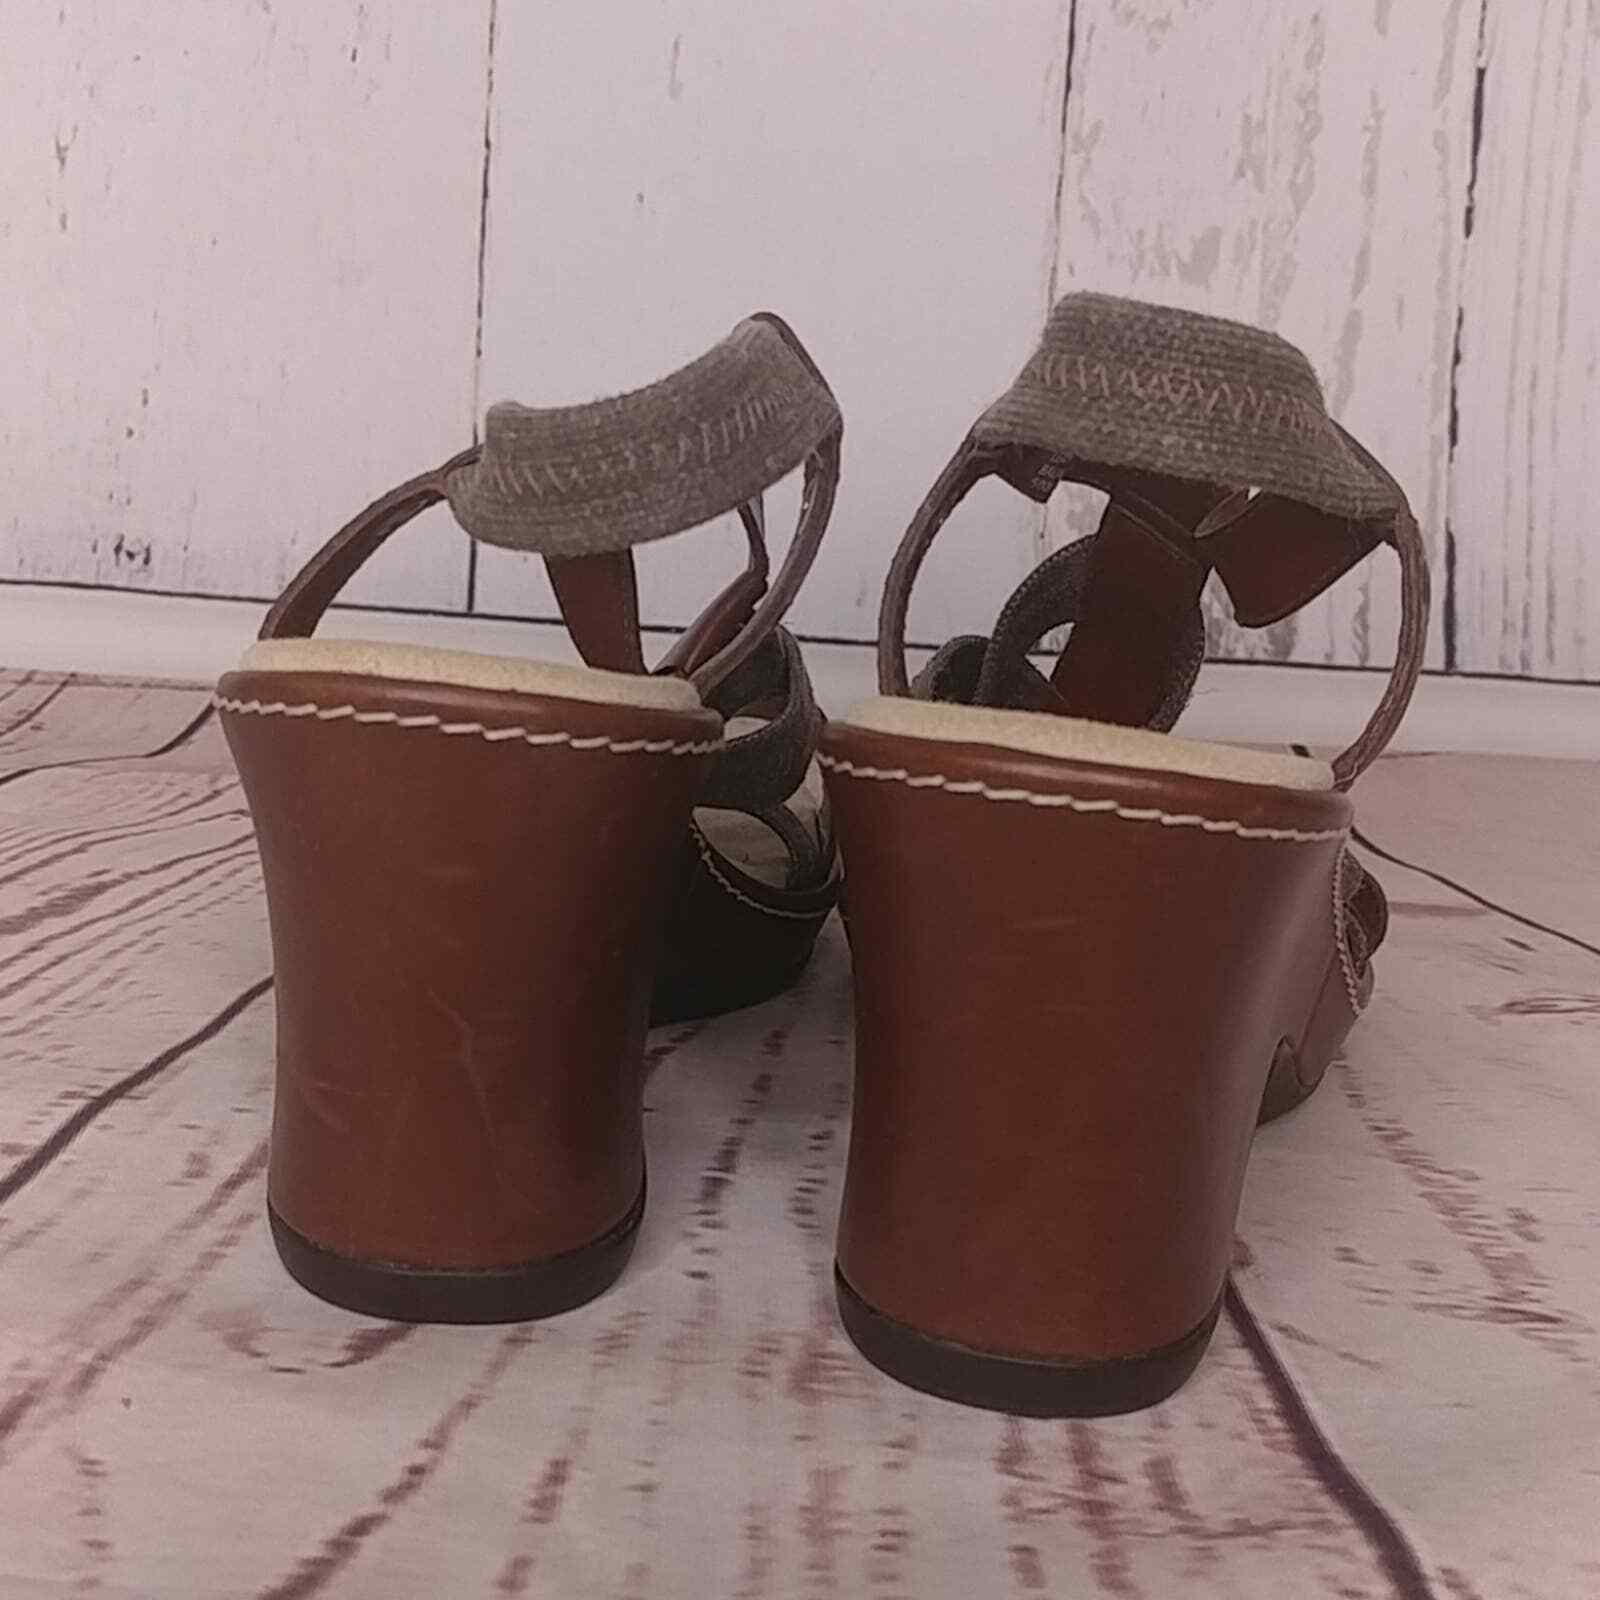 Rockport Wedge Strappy Sandals - image 3